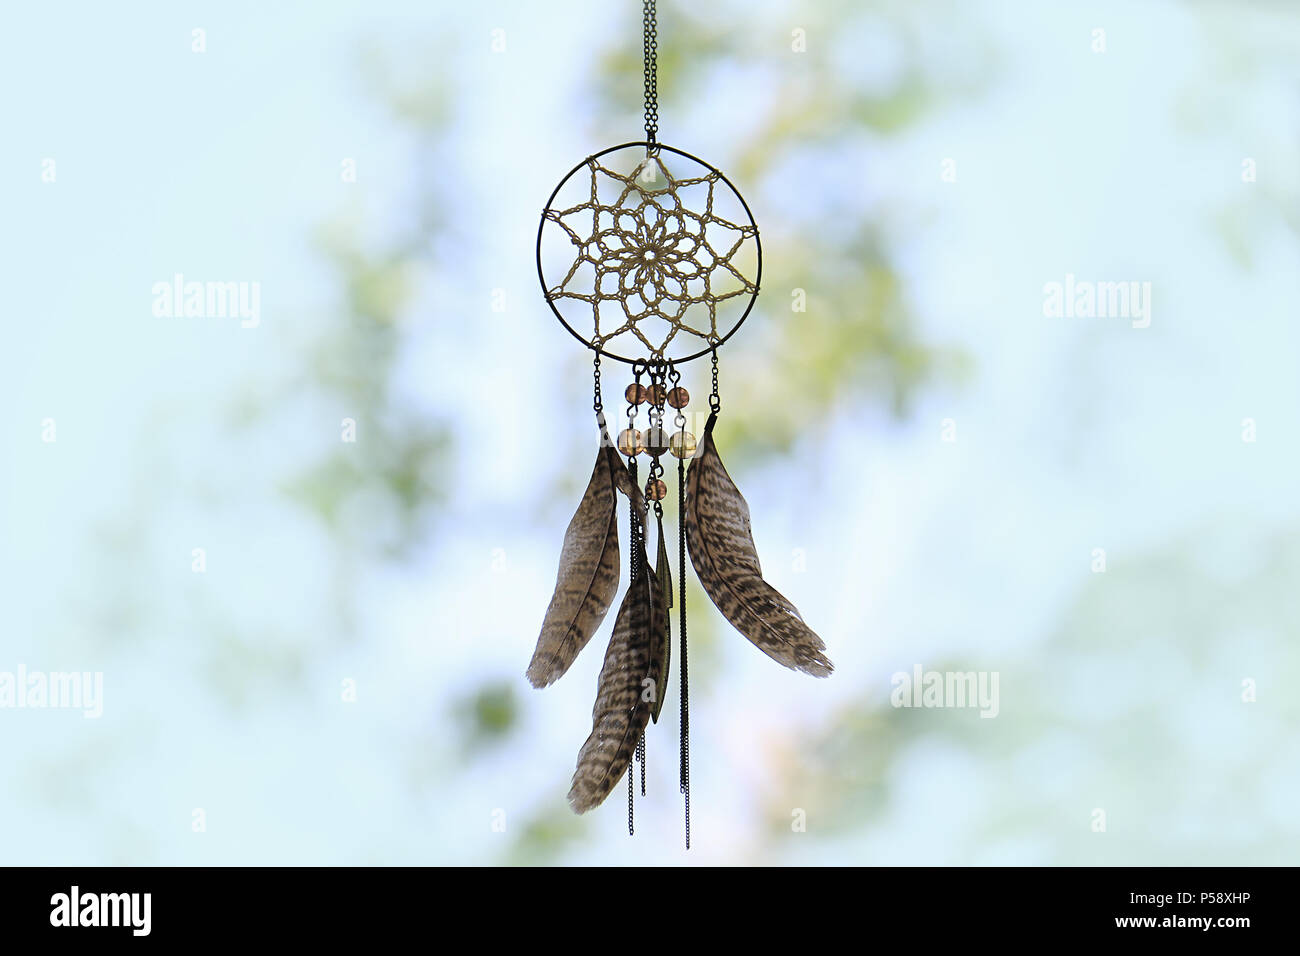 A dreamcatcher against a blurred background of leaves. - Stock Image